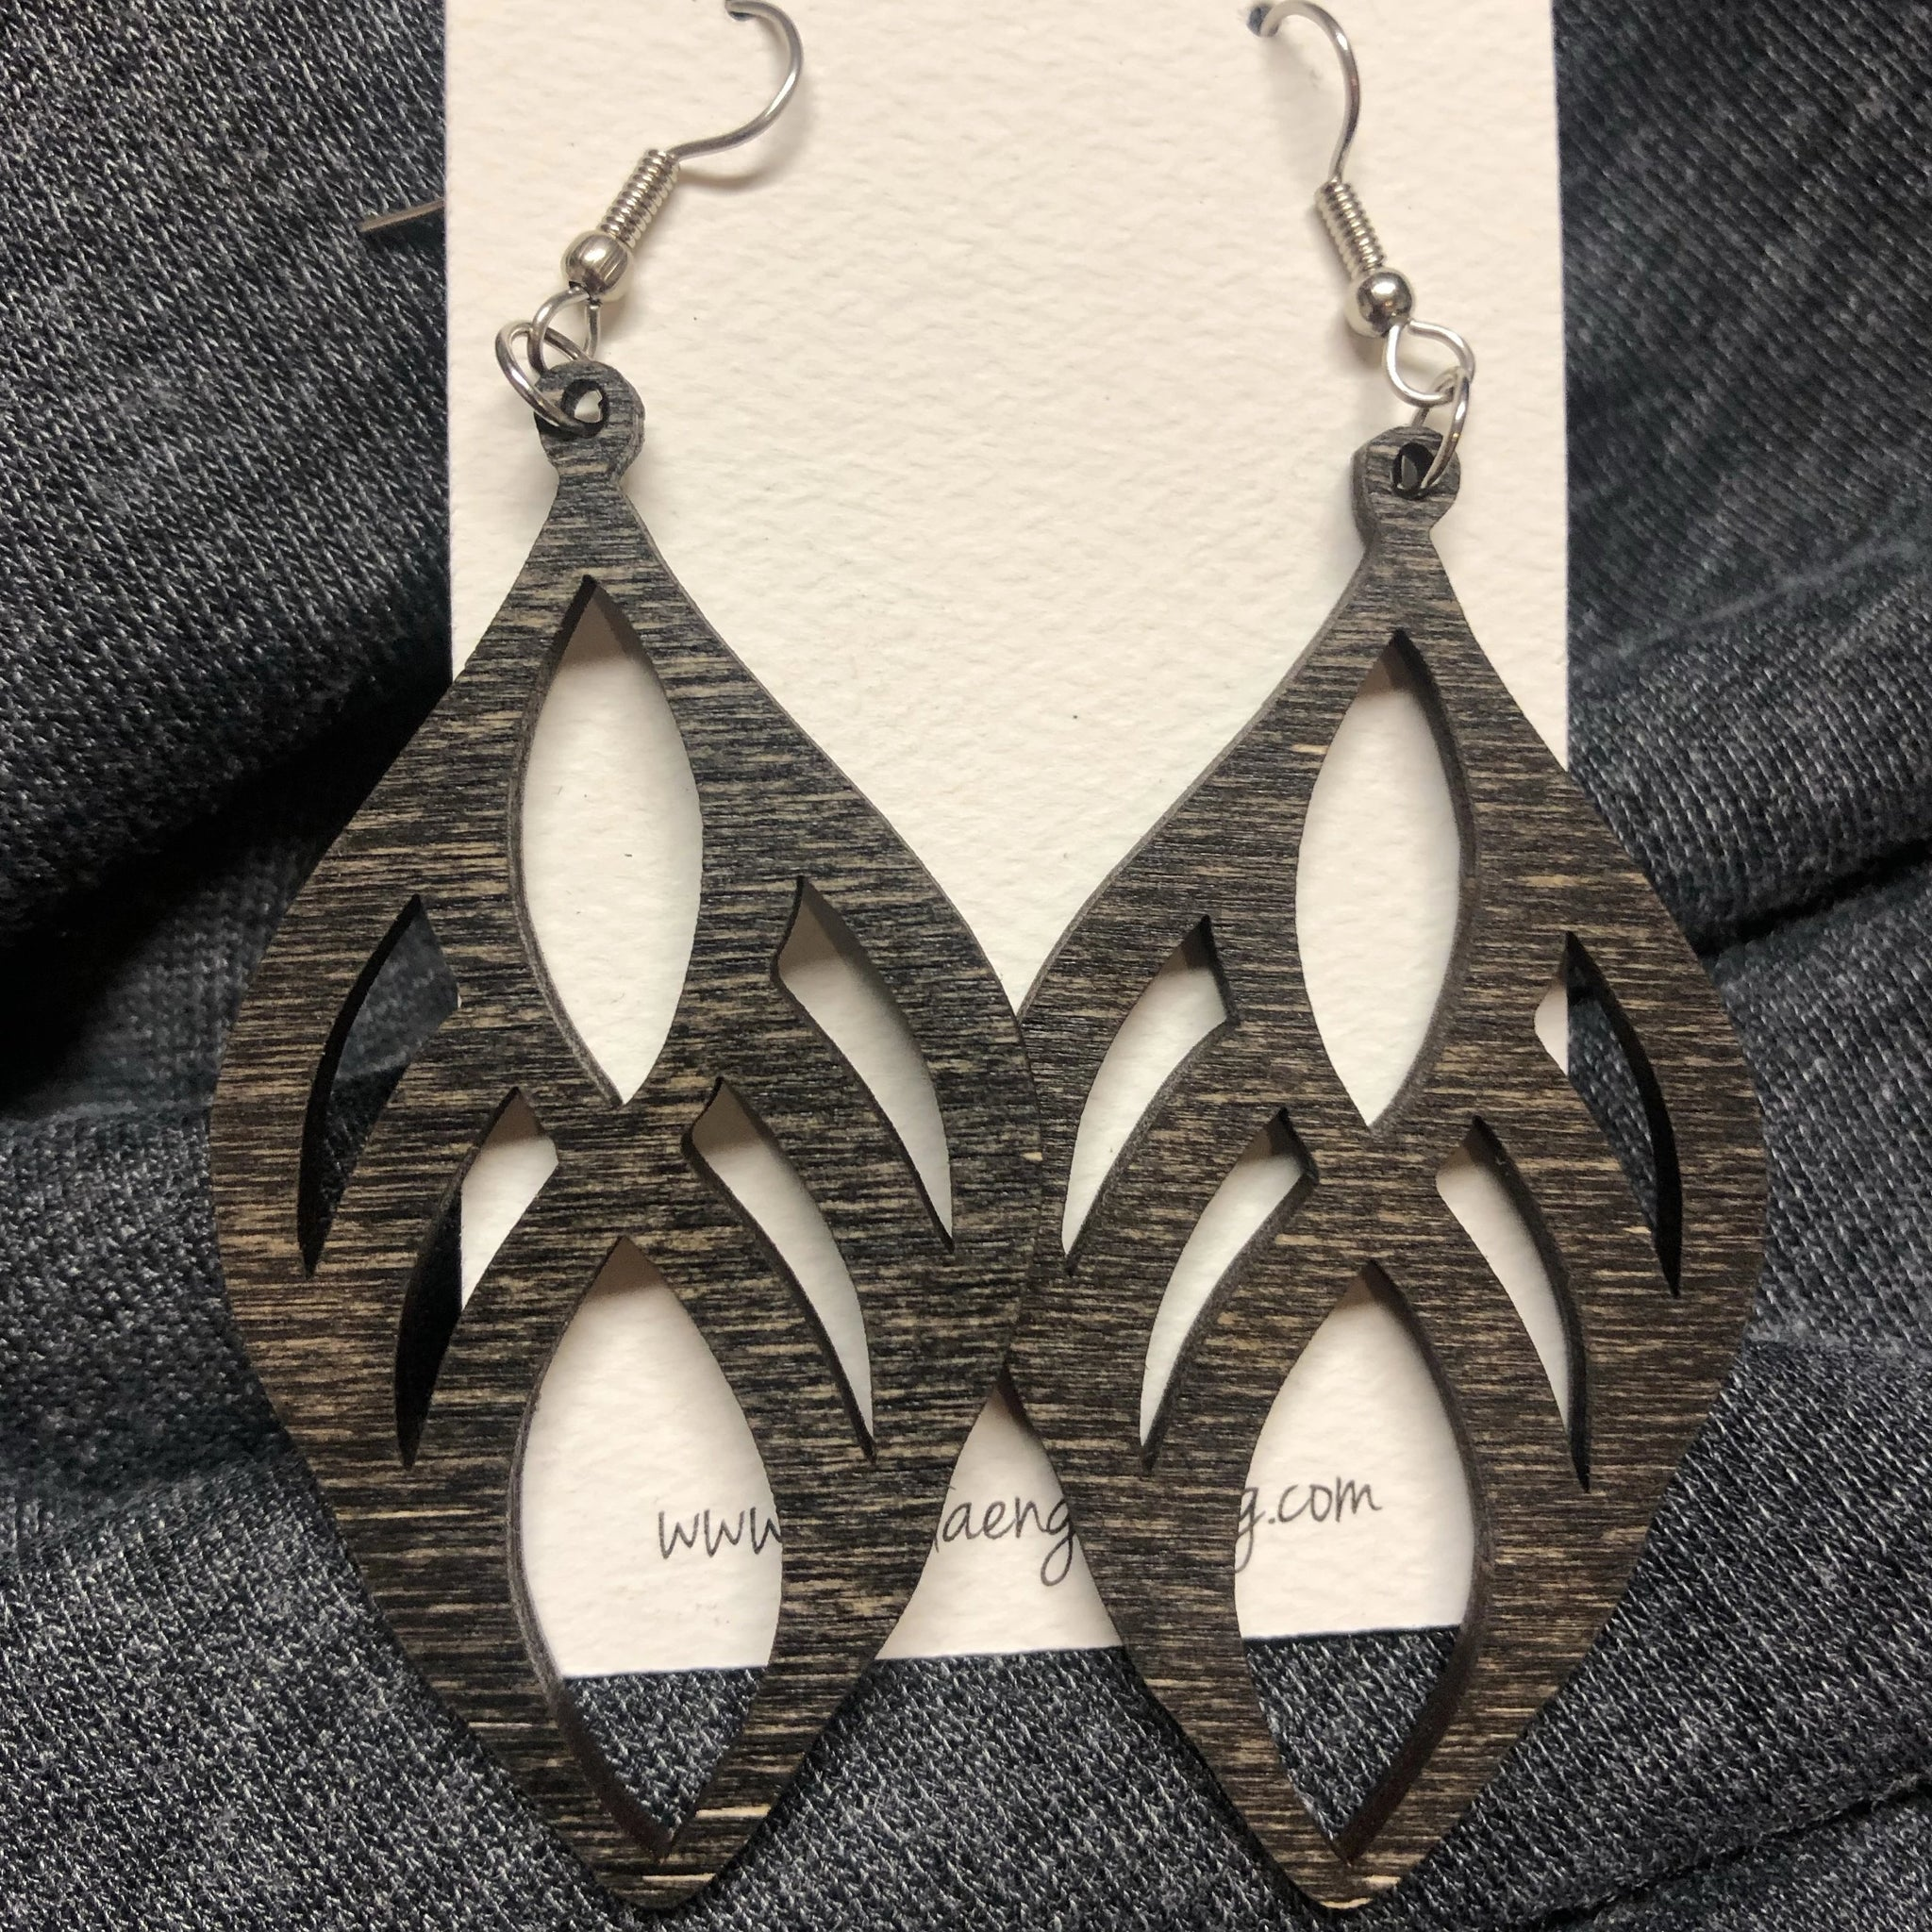 Wooden Teardrop Dangle Earrings. Stained Birch Wood Laser Cut Earrings. - C & A Engraving and Gifts